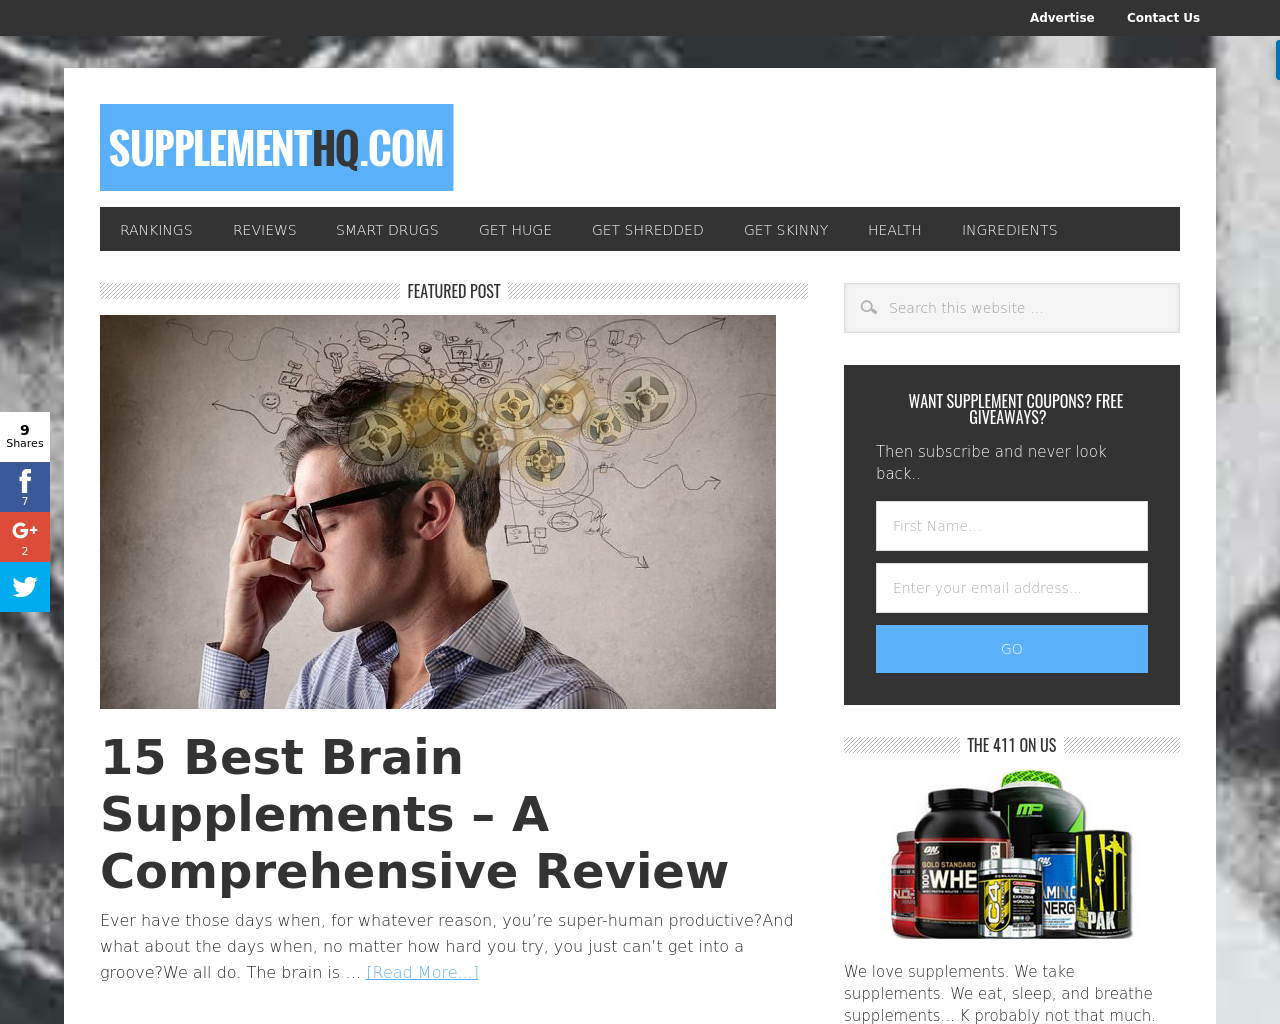 Supplement-HQ-Advertising-Reviews-Pricing